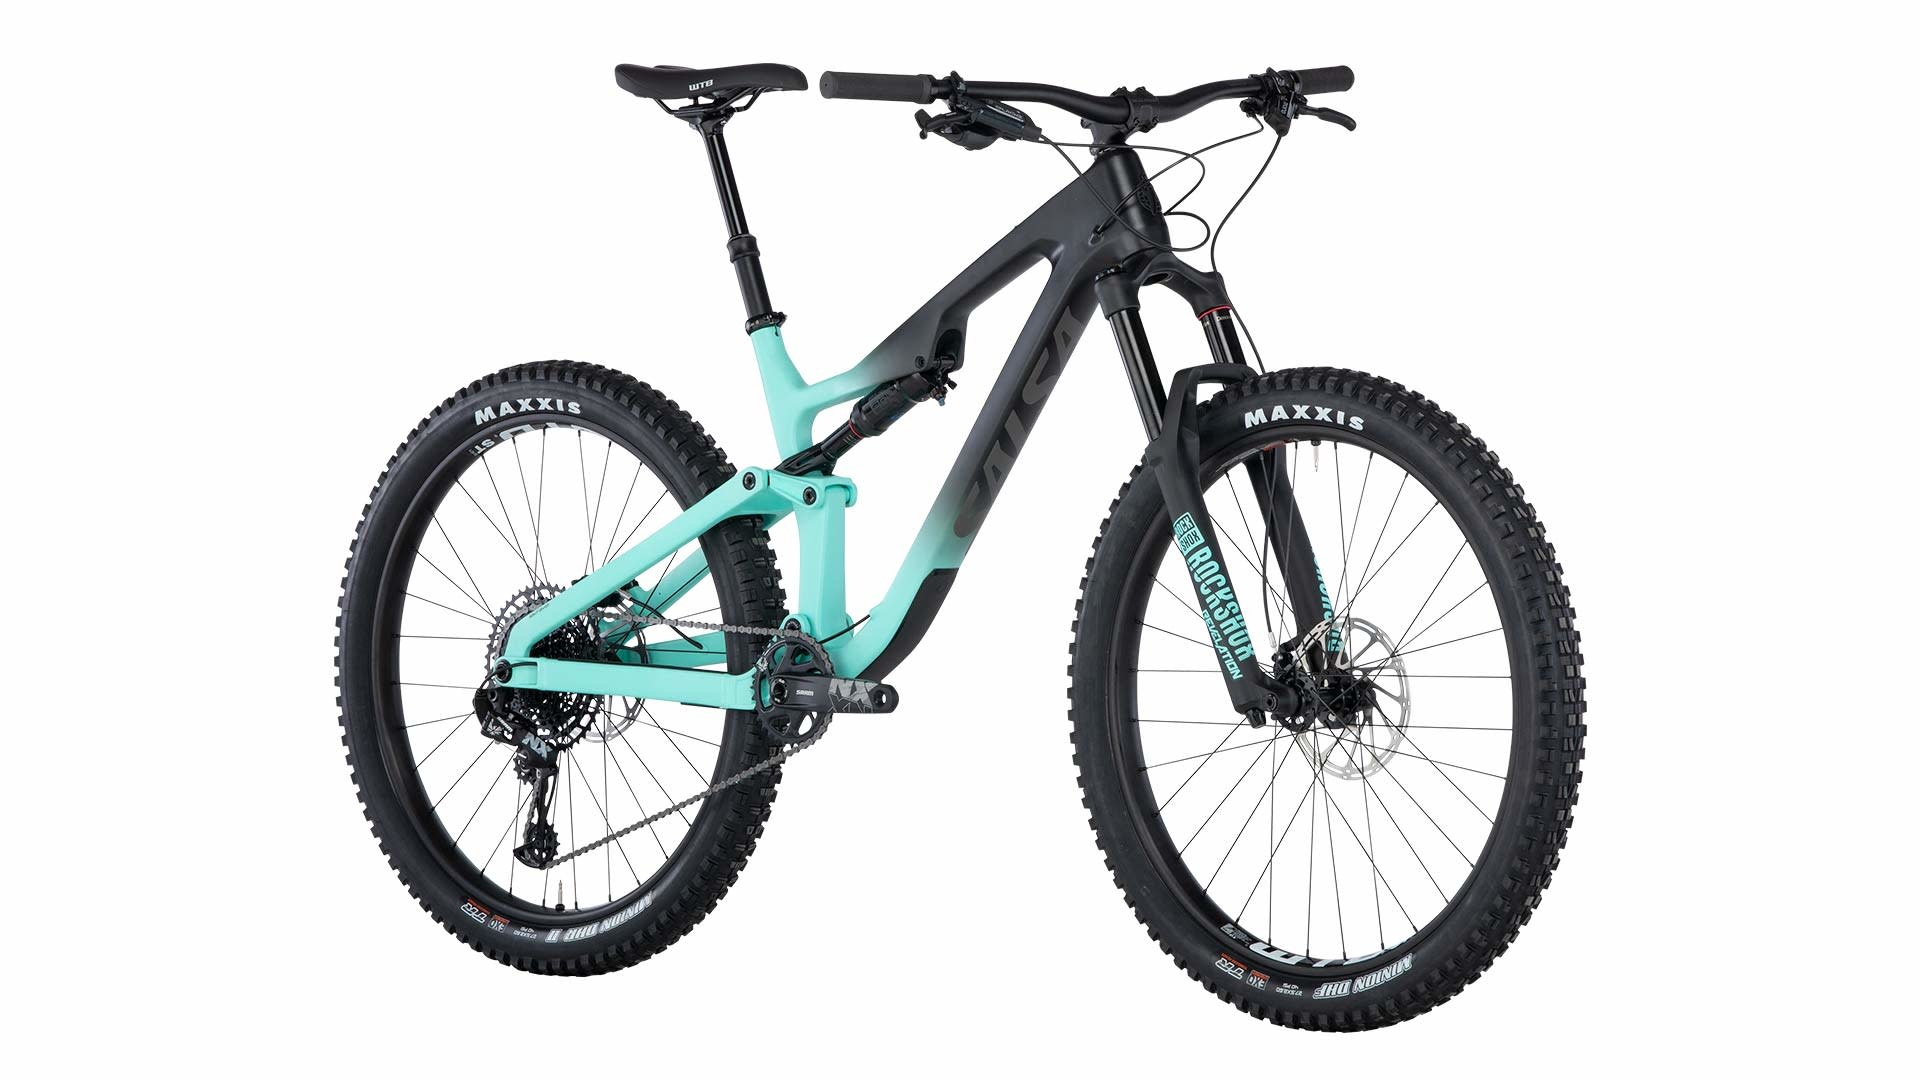 Salsa Salsa Rustler Carbon NX Eagle Bike Black/Blue/Fade 2019